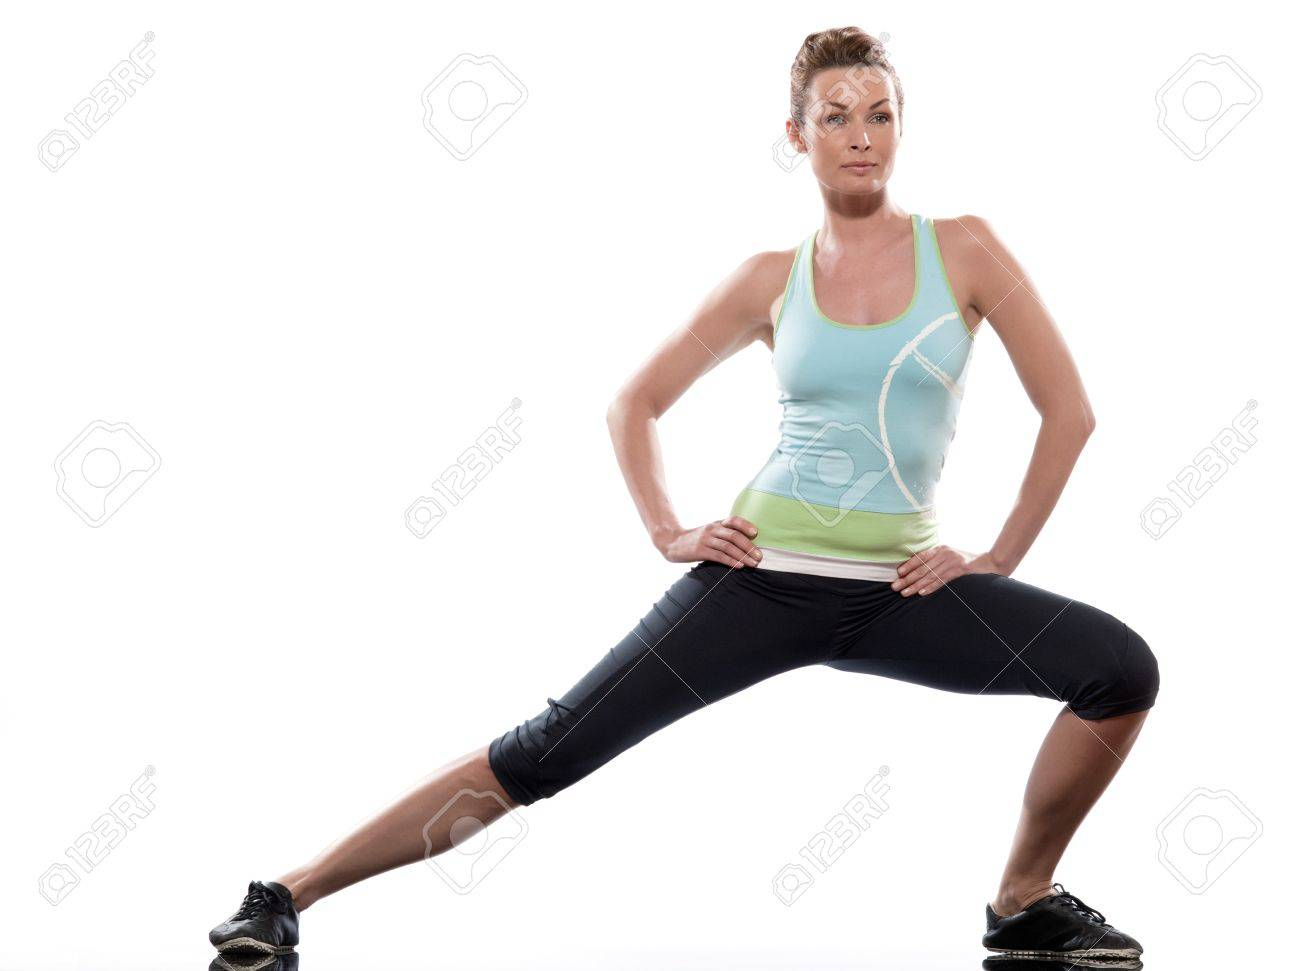 stretching workout posture by a woman on studio white background Stock Photo - 11766137